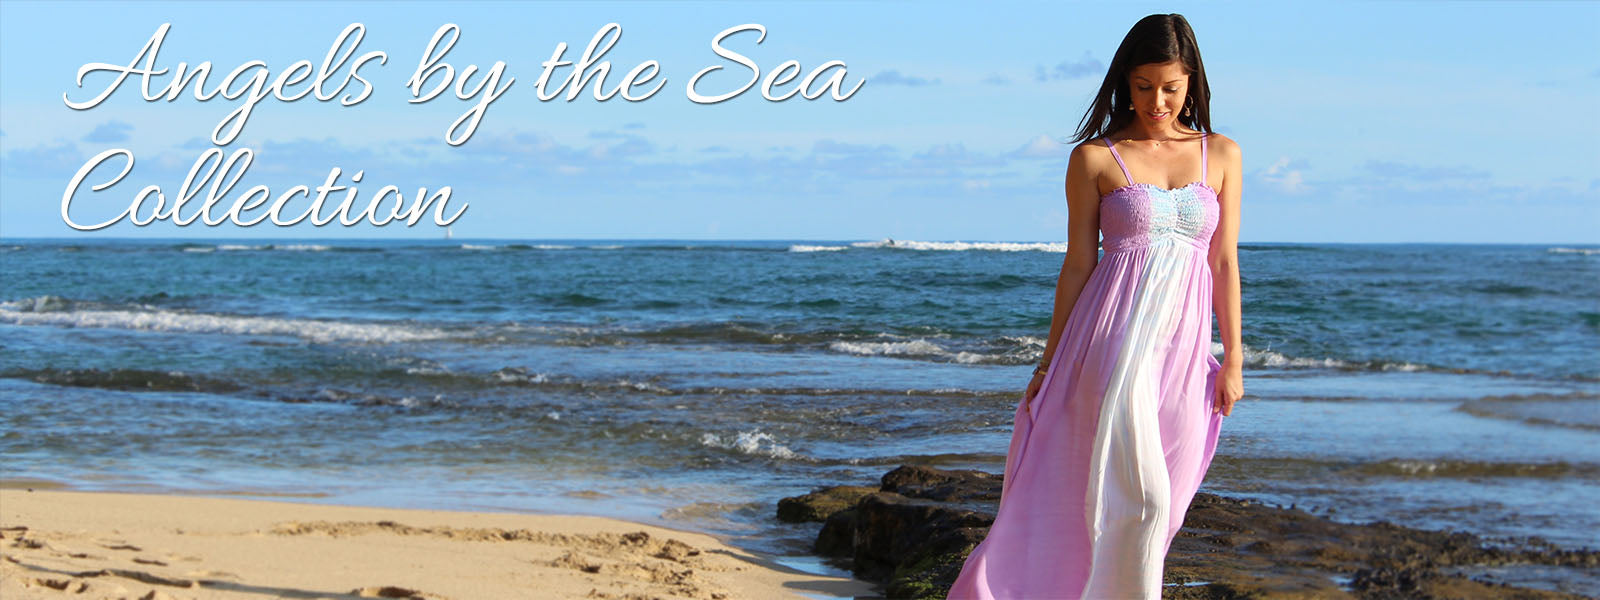 Angels by the Sea Collection at AlohaFunWear.com